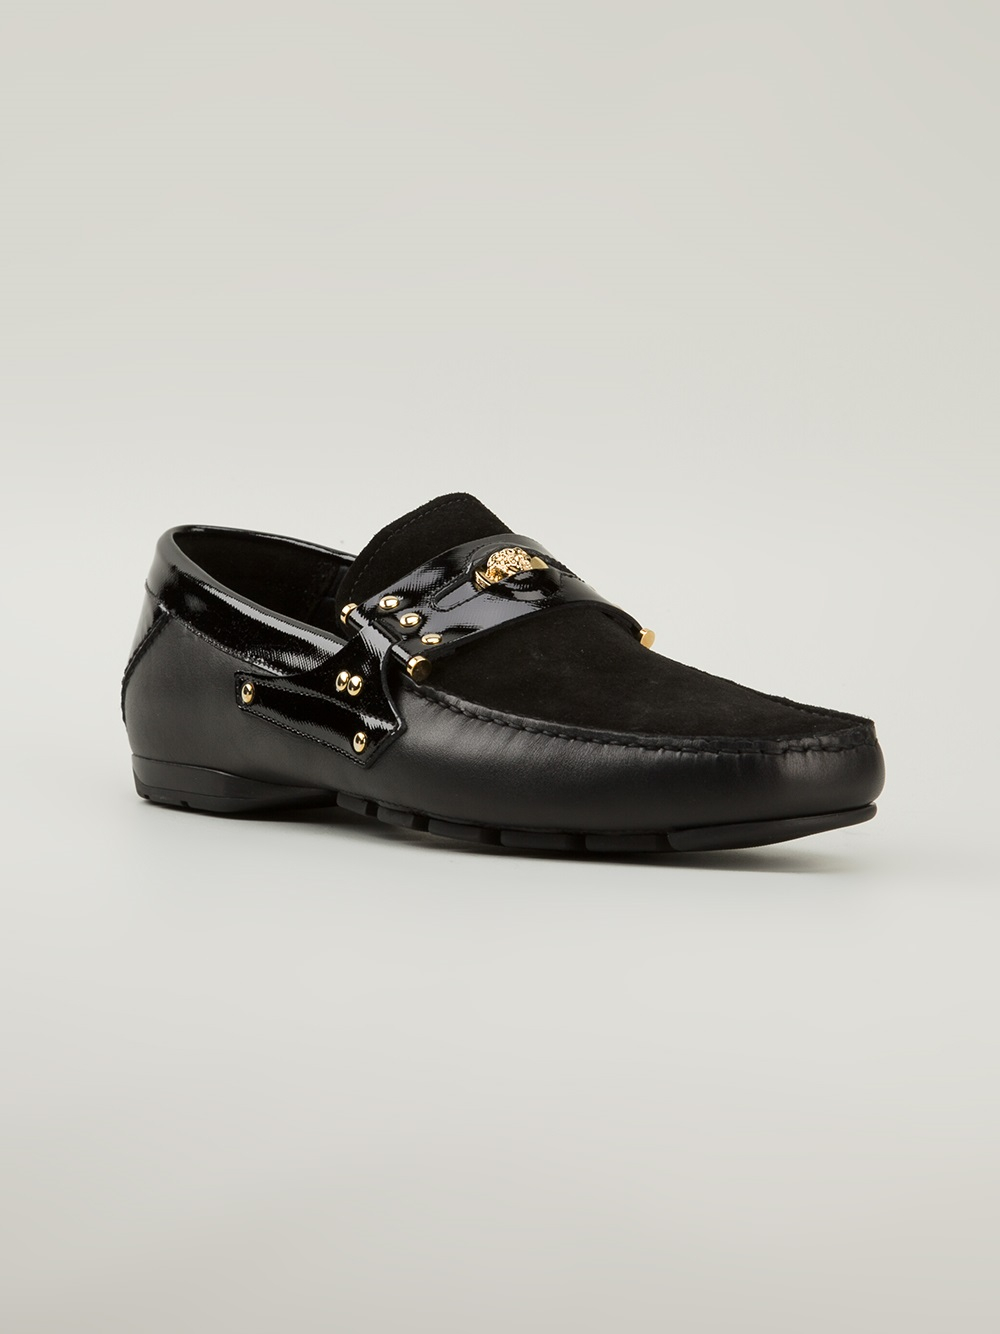 Versace Contrast Panel Driving Shoes In Black For Men Lyst